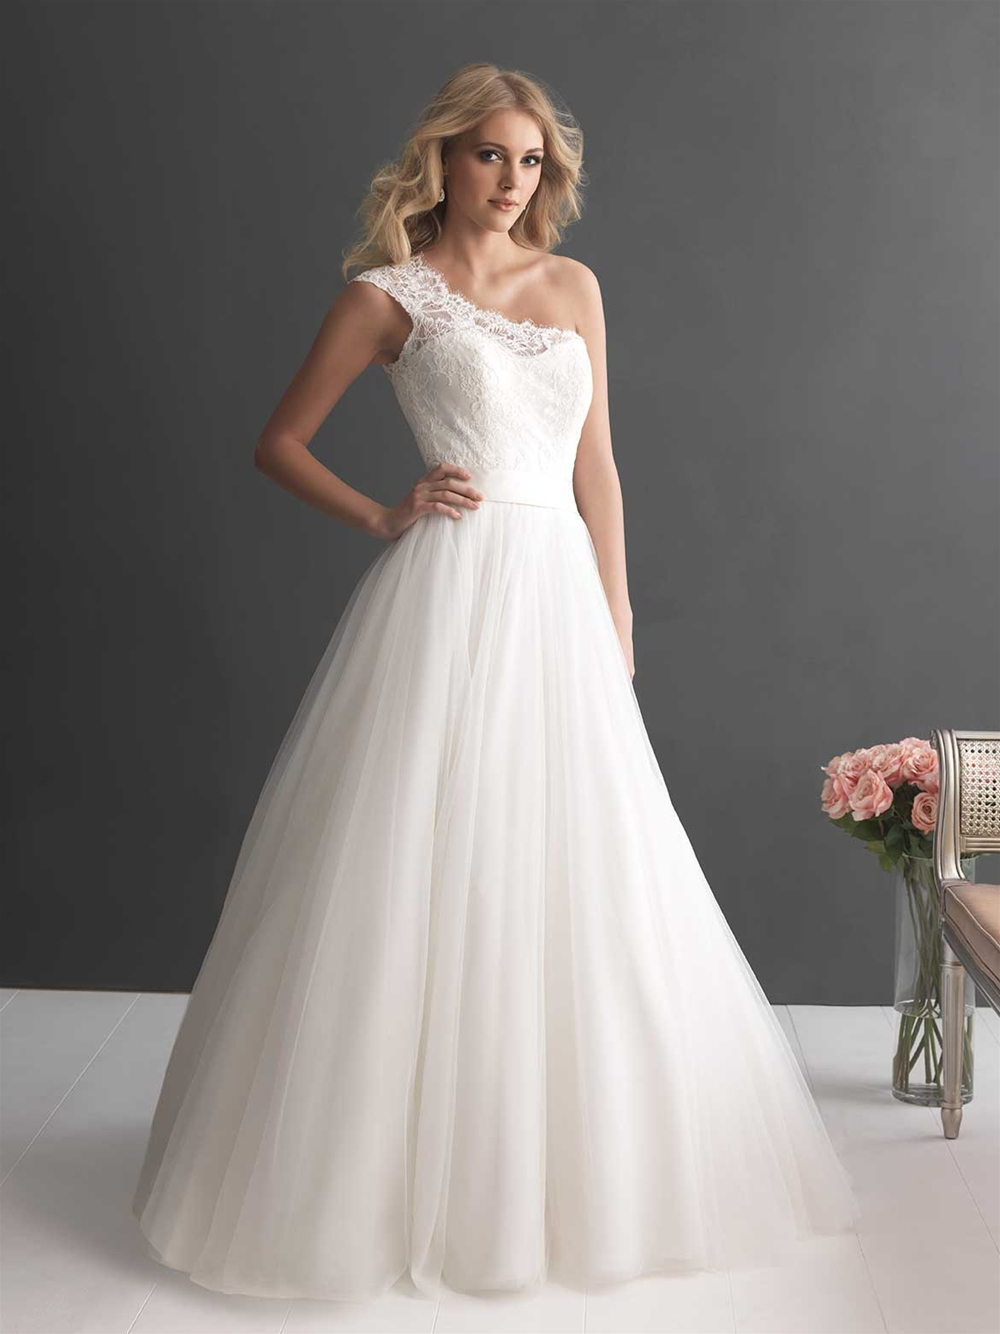 Chinese country lace wedding dress one shoulder tulle for Lace one shoulder wedding dress